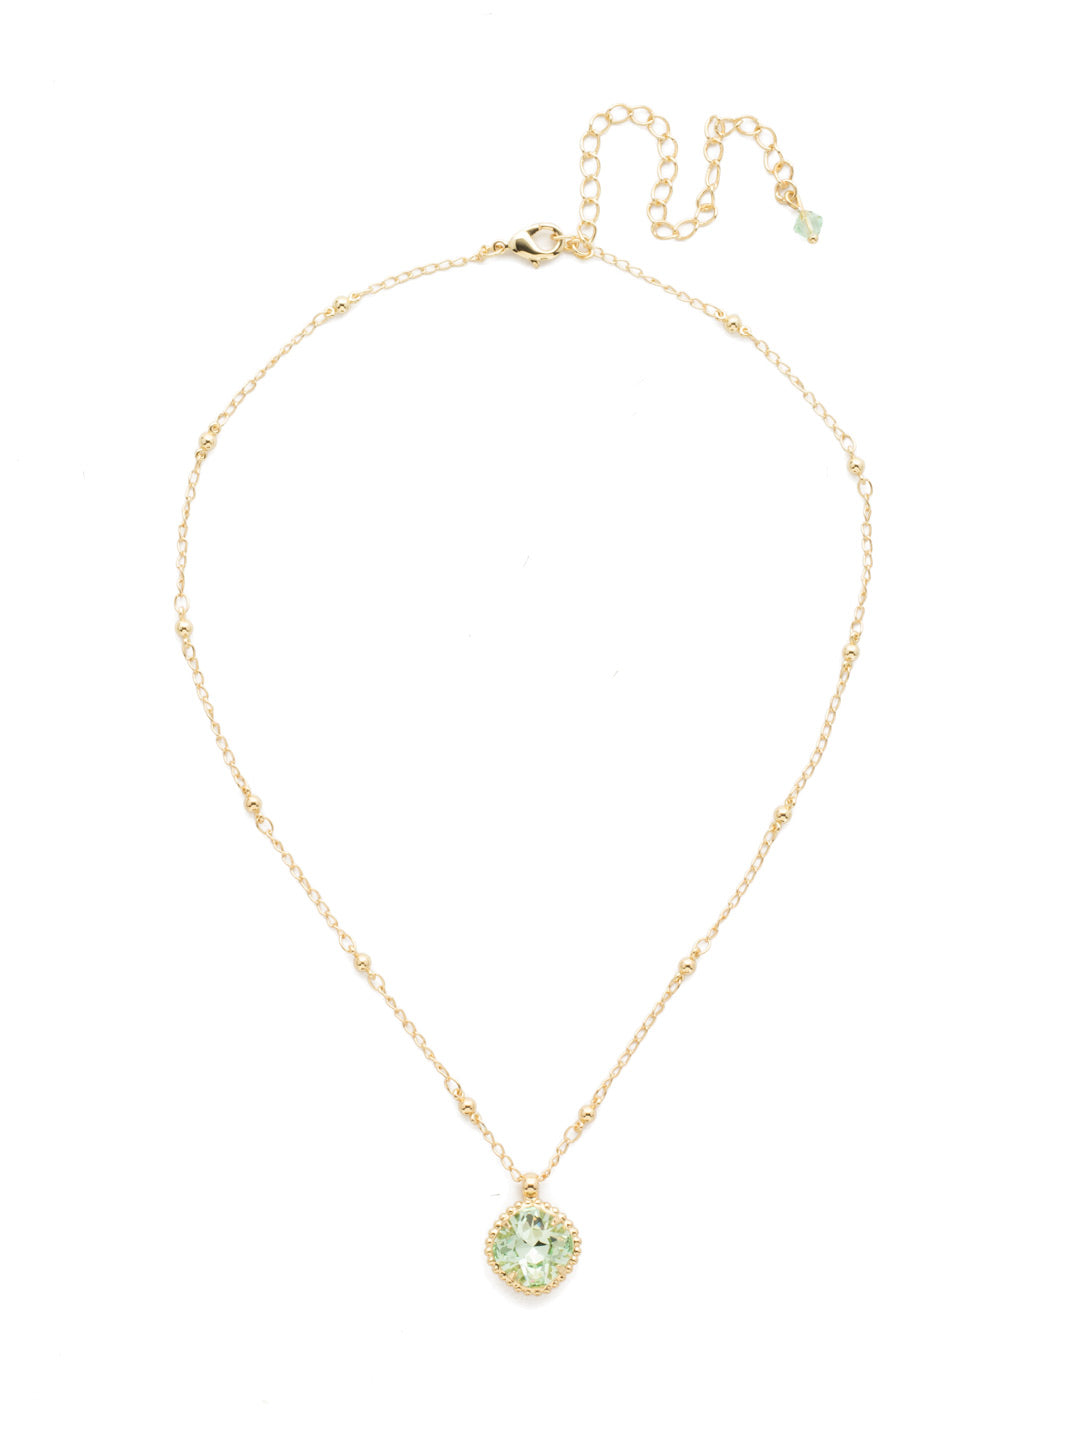 Cushion-Cut Solitaire Necklace - Sorrelli Essentials - NDS50BGMIN